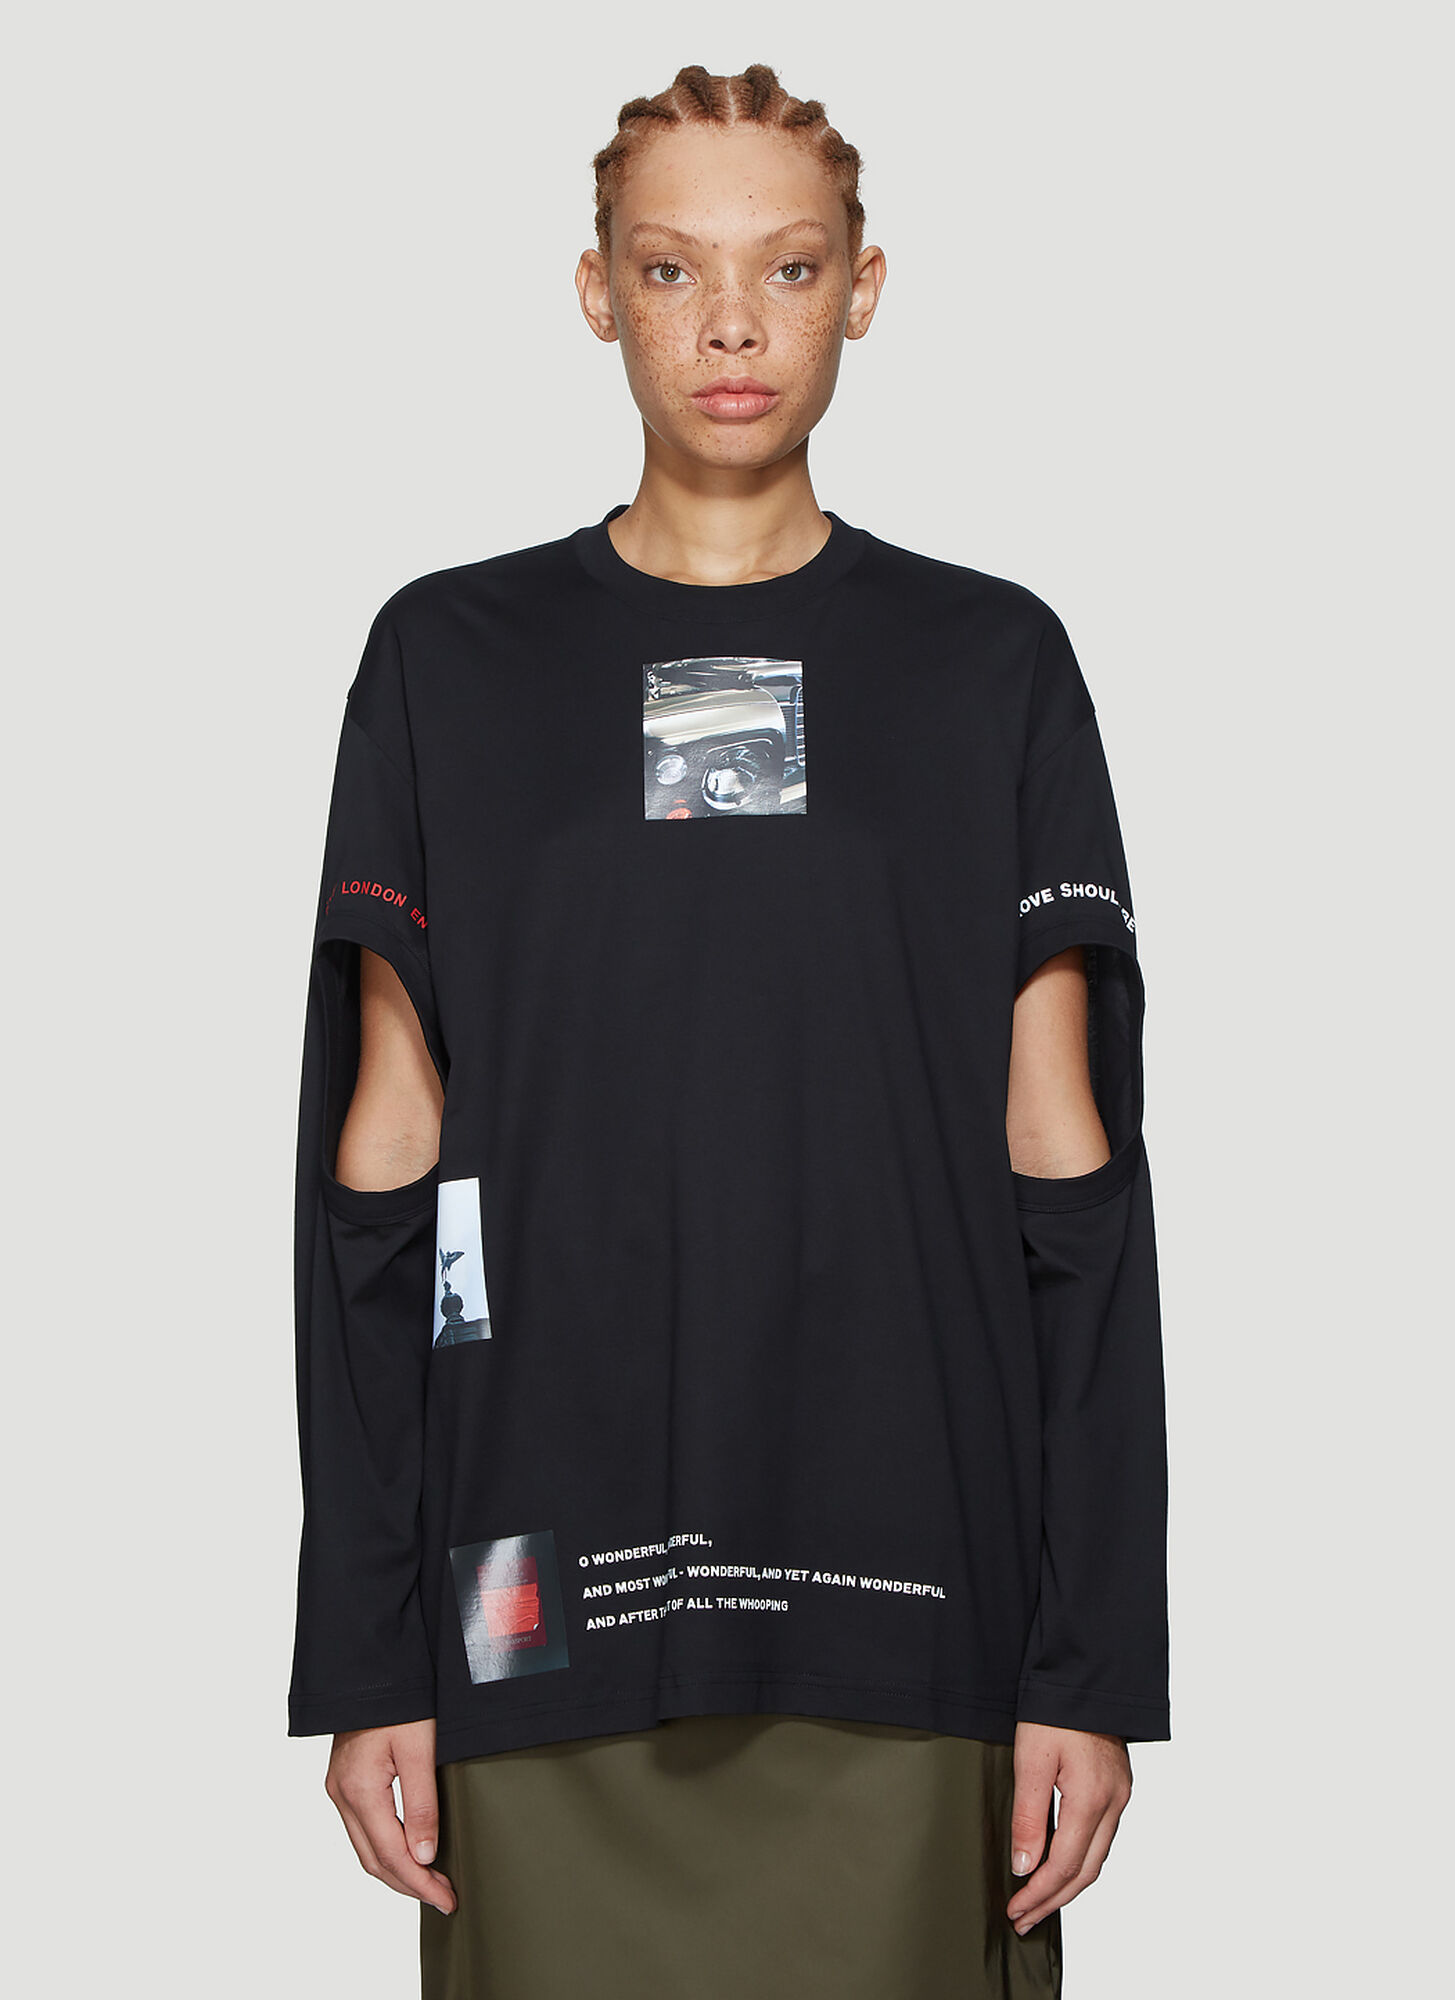 Burberry Ashbury Long Sleeve T-Shirt in Black